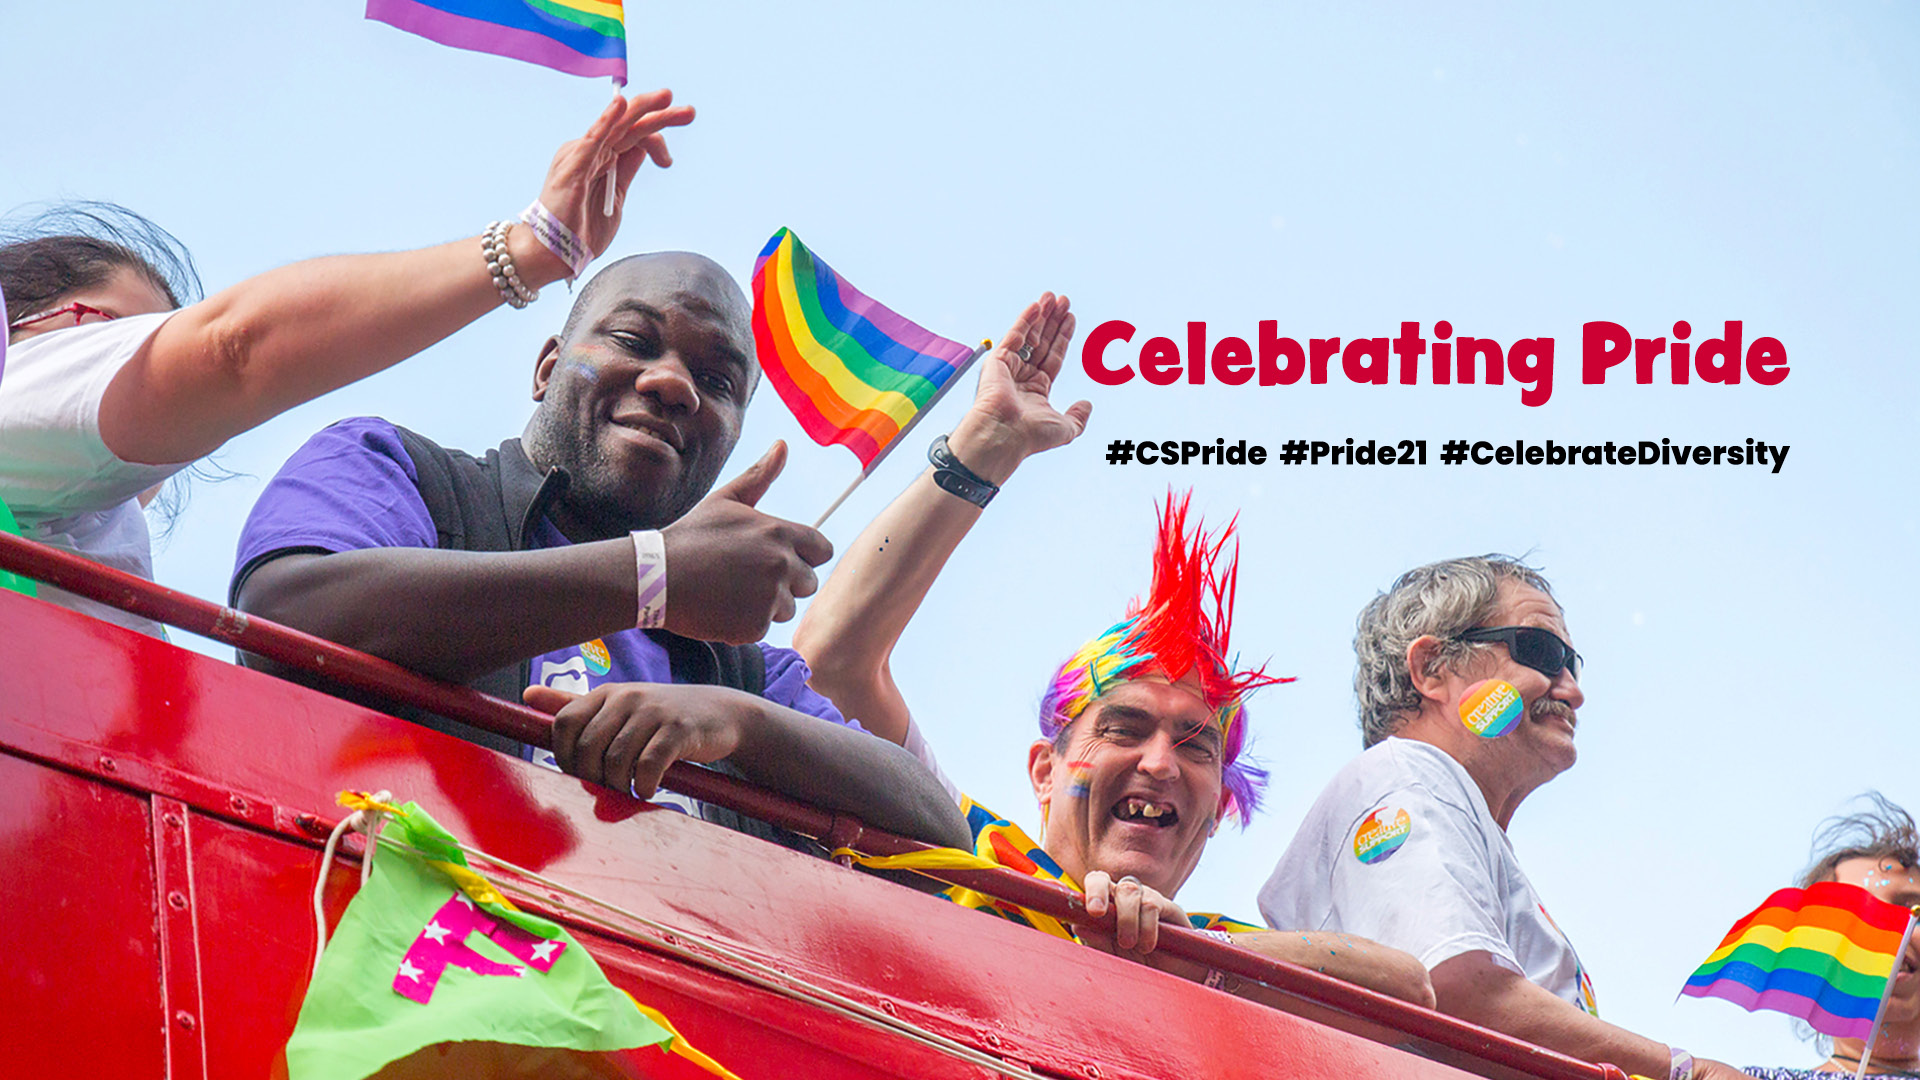 Celebrating the power of Pride this August